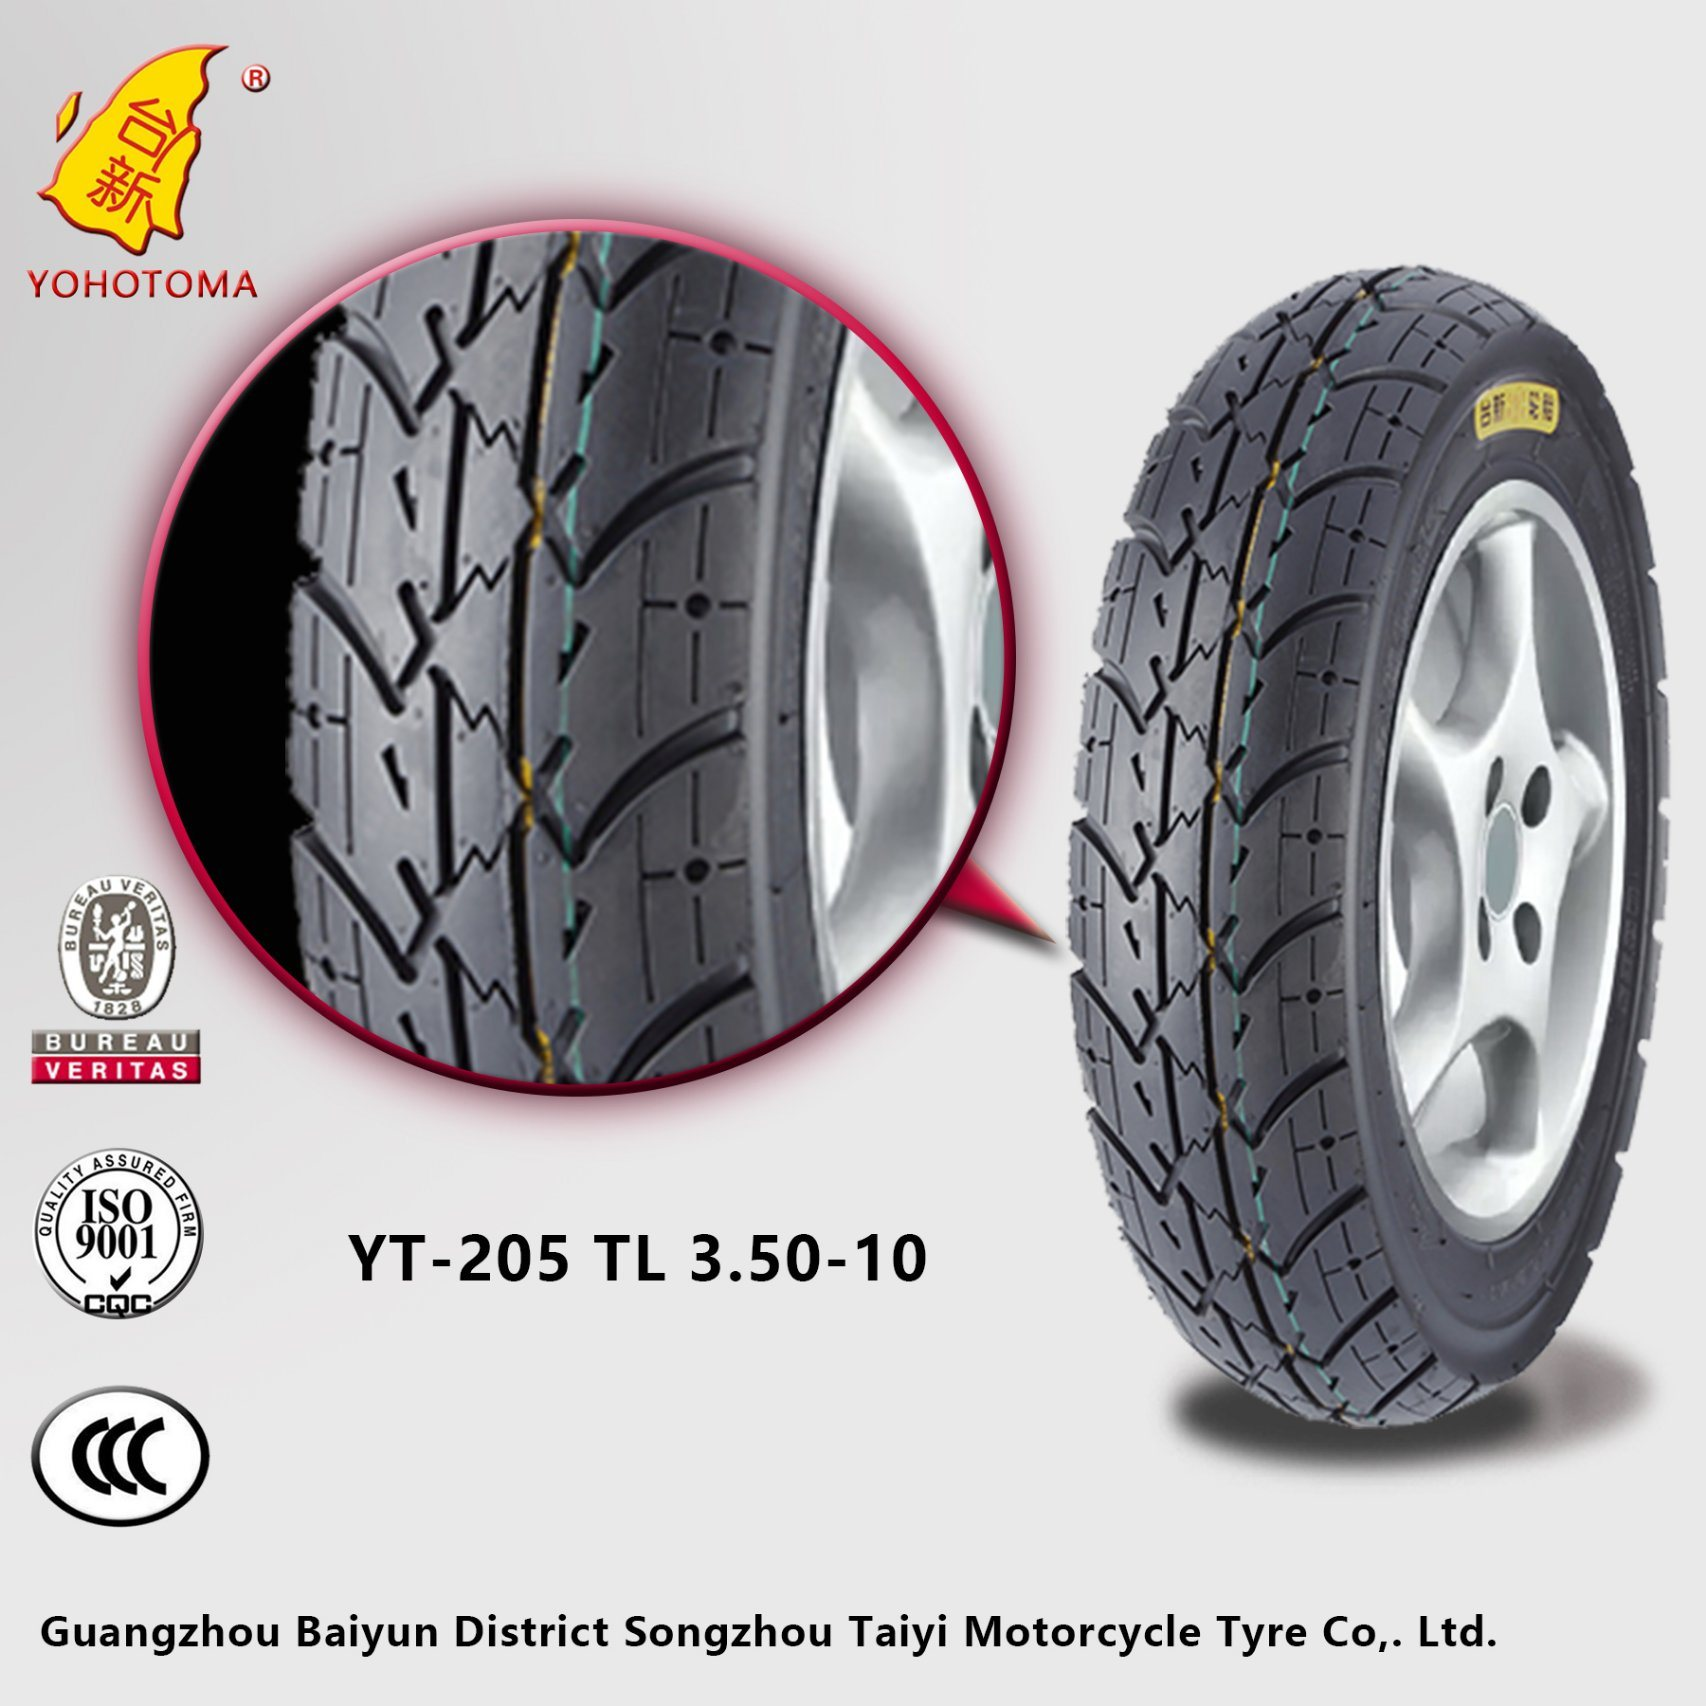 High Quality Low Price Motor/Bicycle Tyre (YT1) 350-10 YT-205 TL